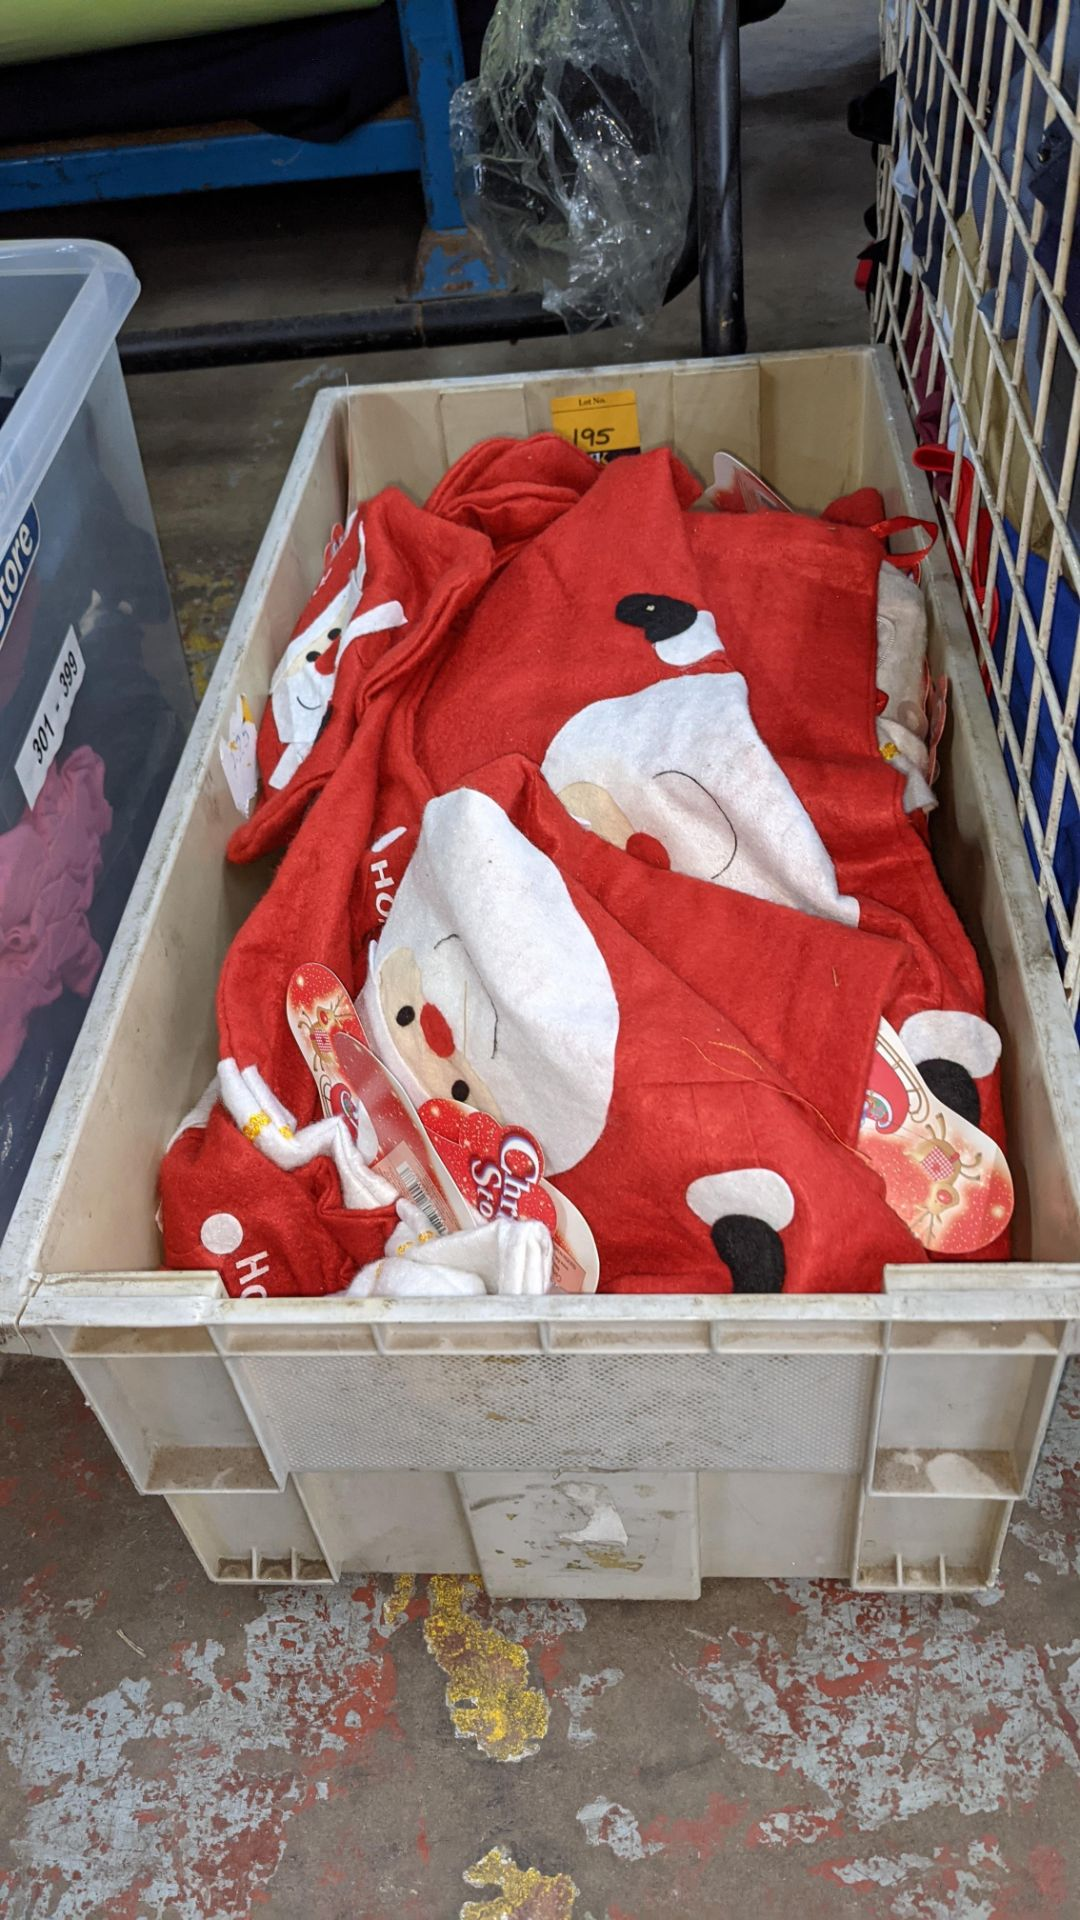 Quantity of Christmas stockings, Christmas sacks & other Christmas related items - Image 2 of 3